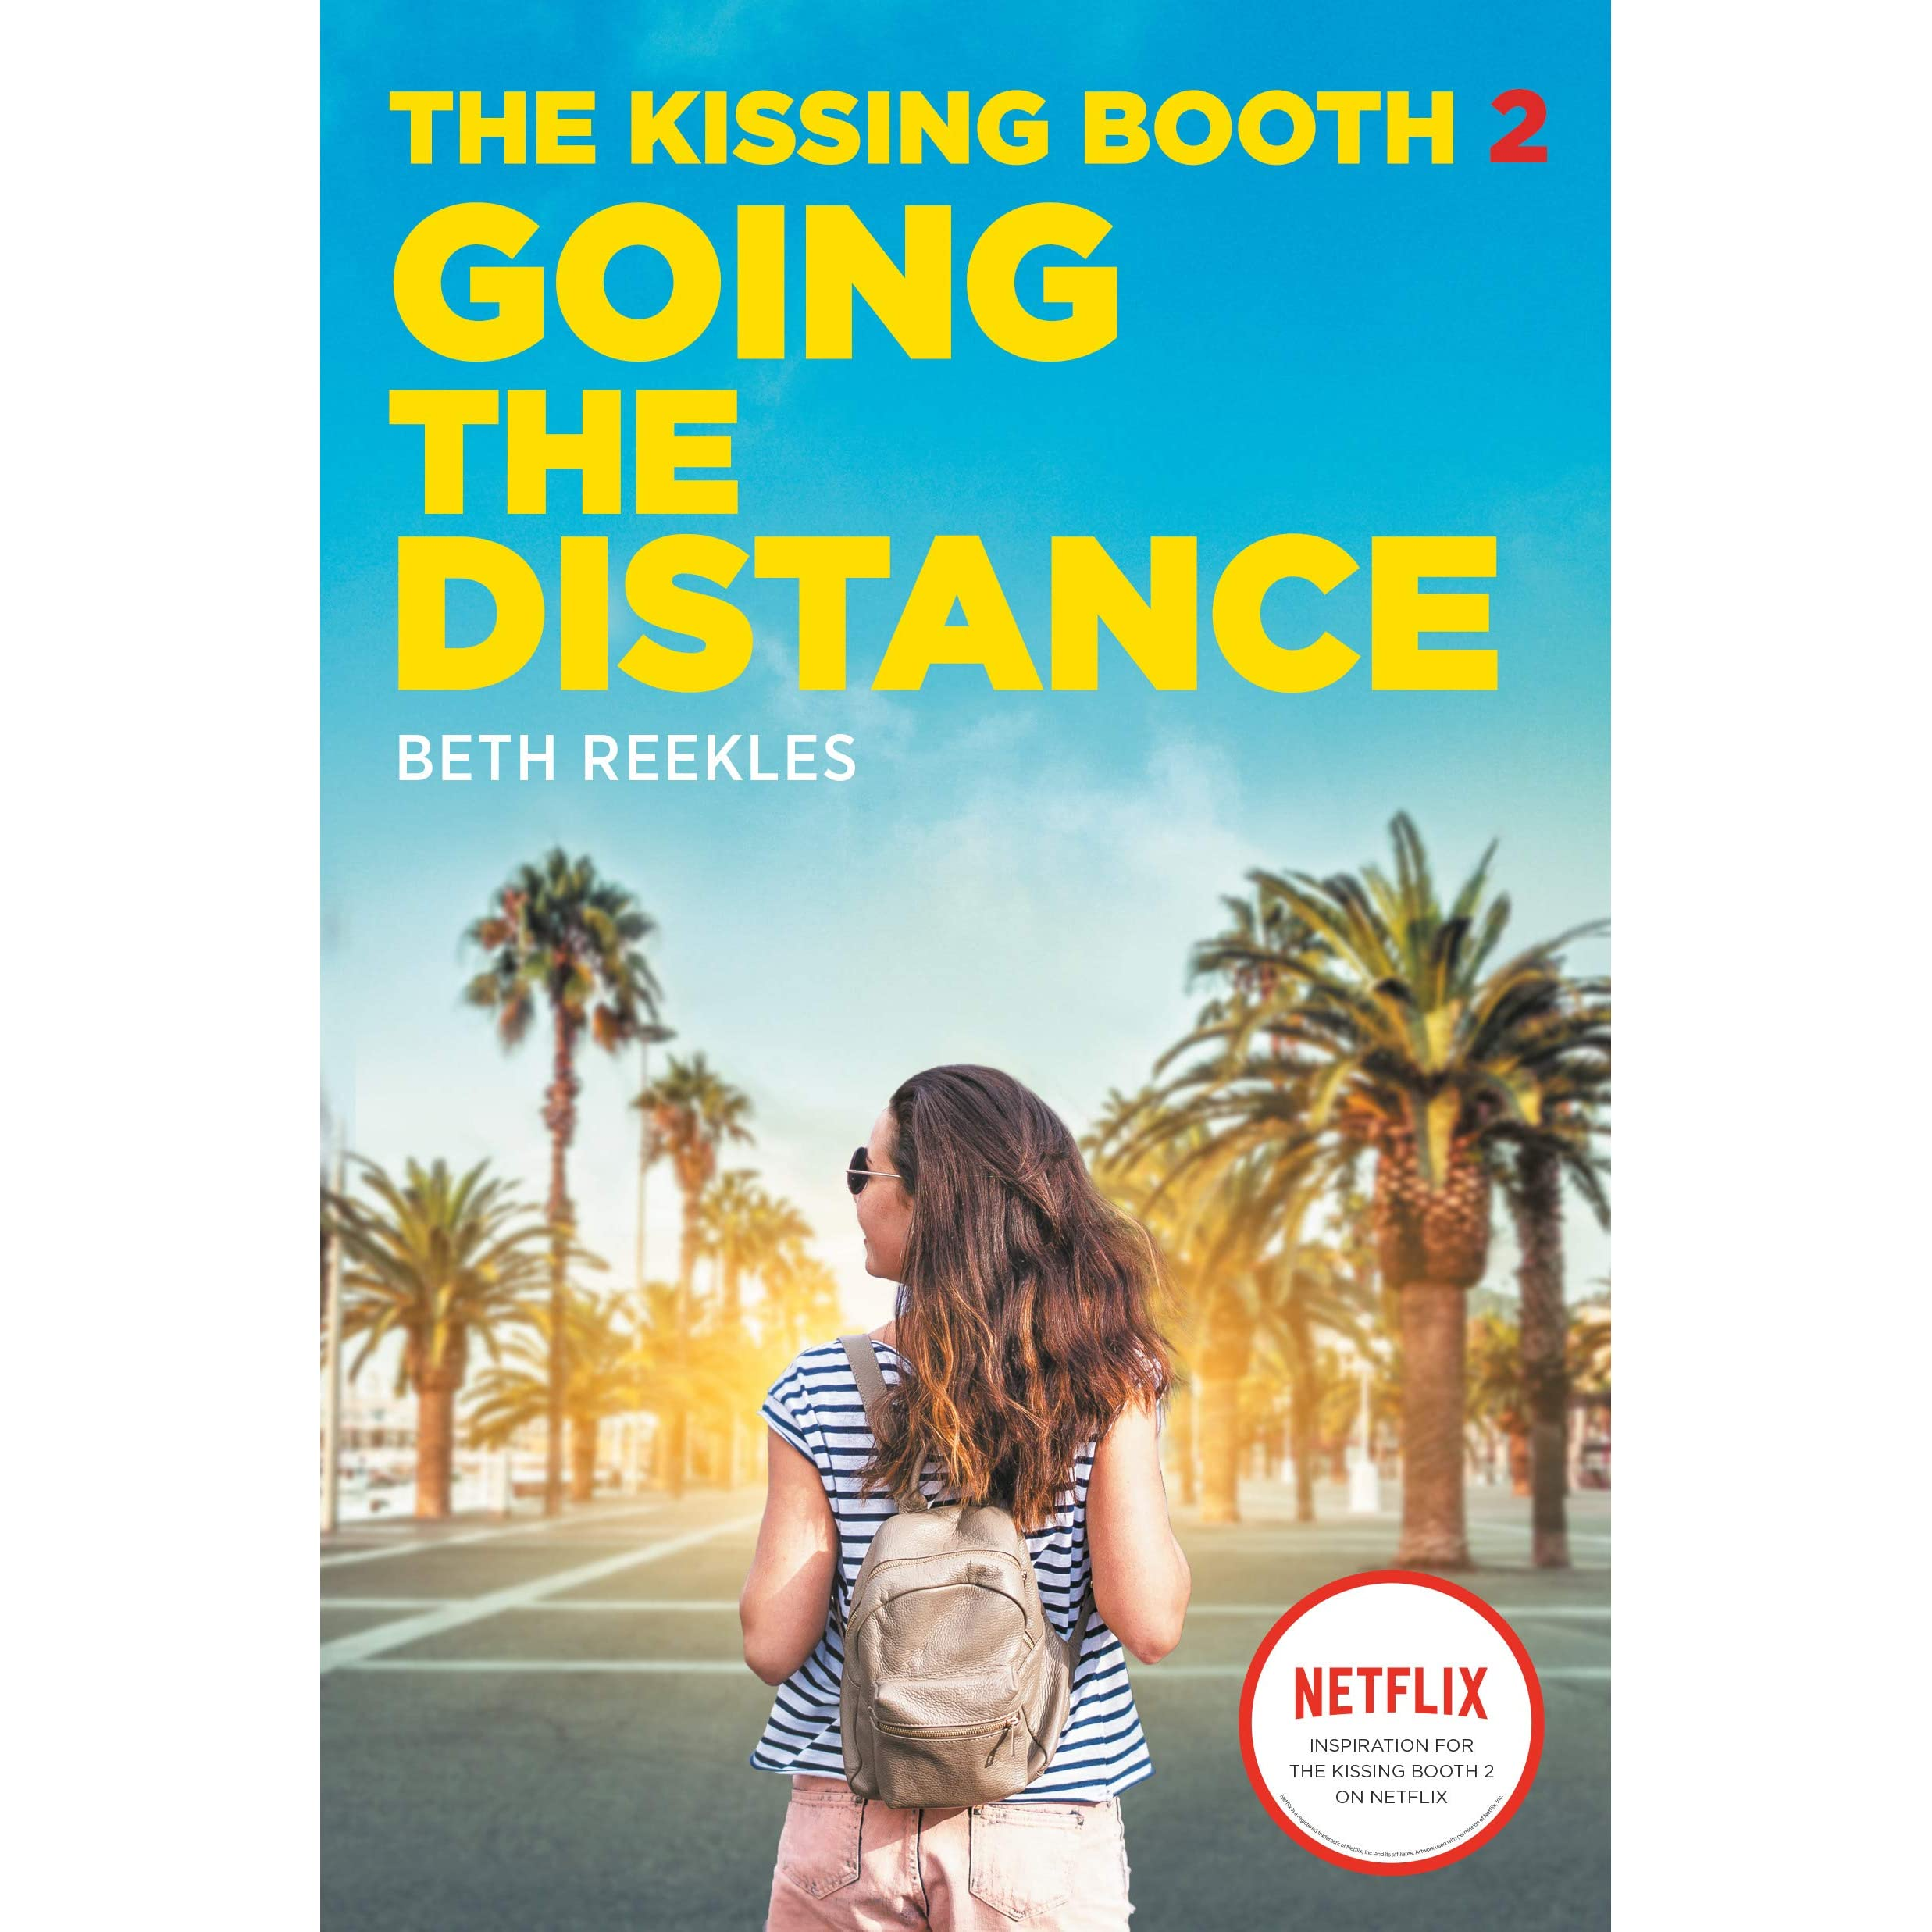 Going the Distance (The Kissing Booth, #2) by Beth Reekles